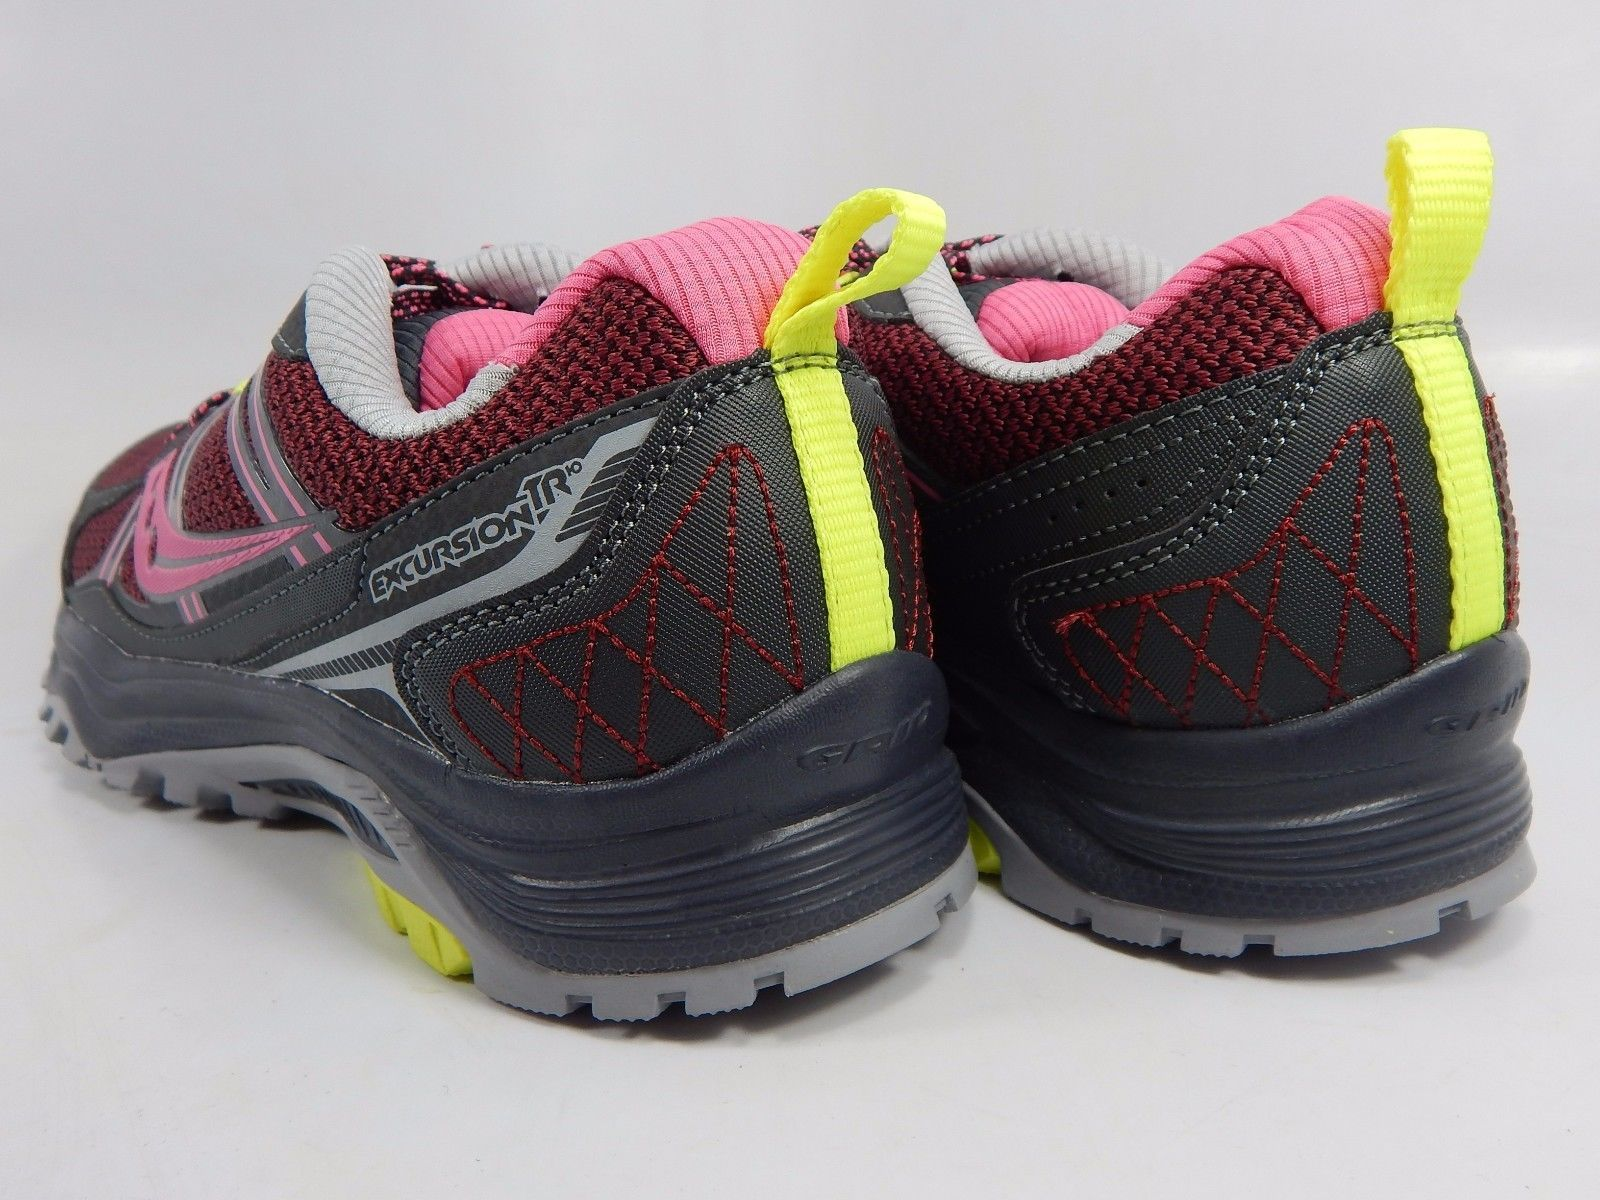 Saucony Excursion TR 10 Women's Running Shoes Sz US 7 M (B) EU 38 Pink S15301-3